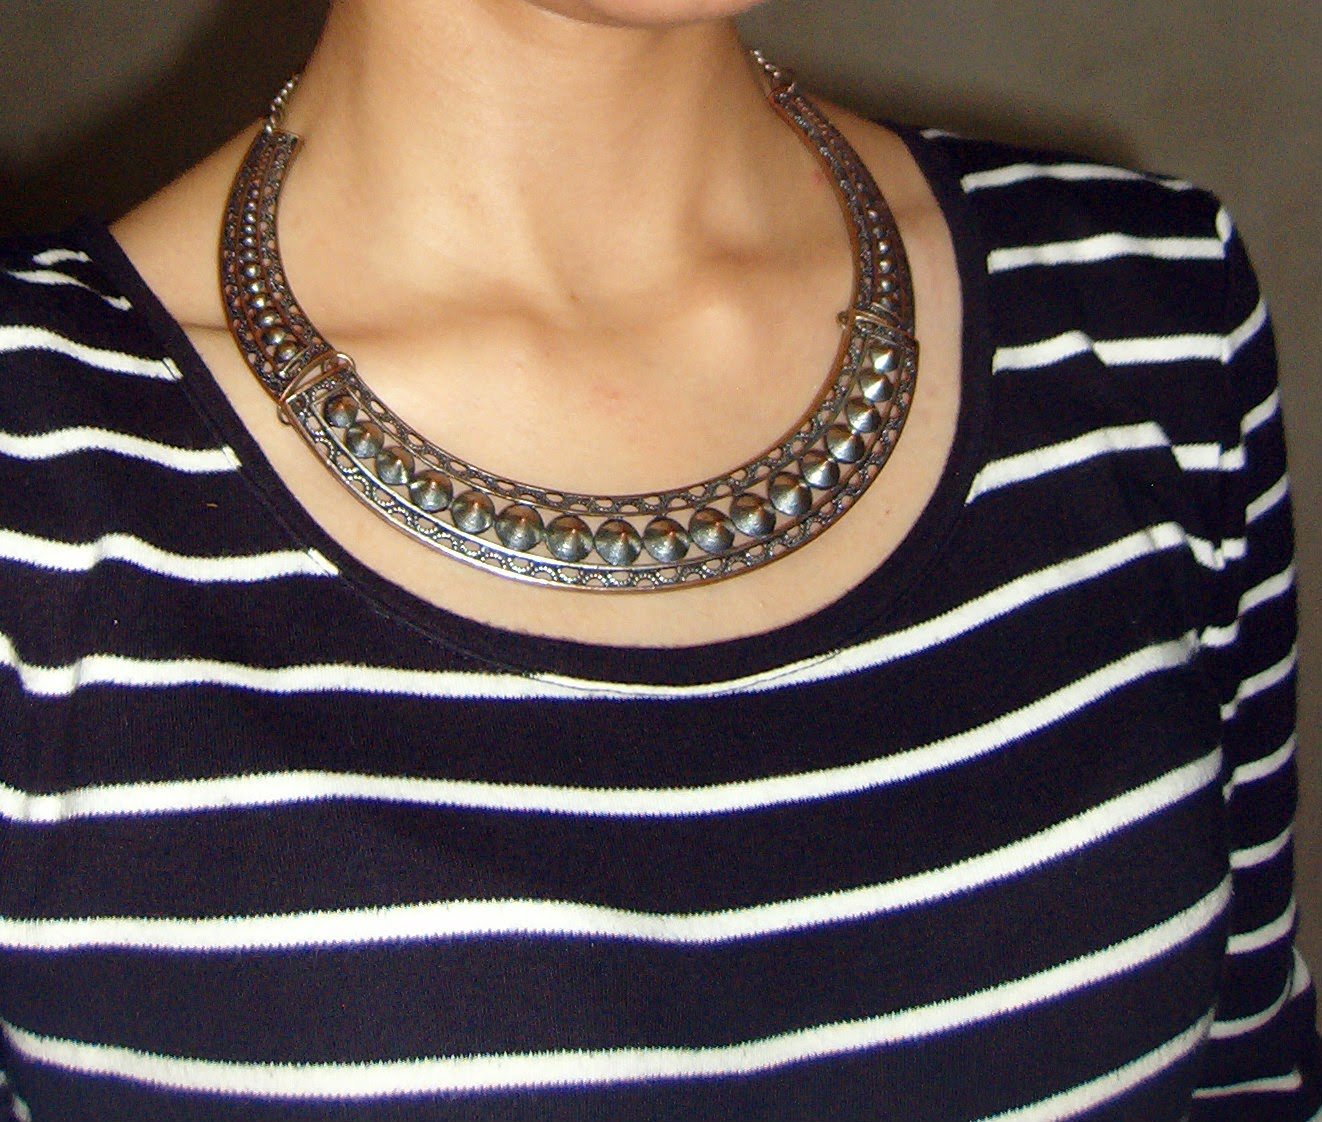 spiked necklace, bib necklace, statement jewellery, bandra shopping, what to buy in bandra, look for less, street shopping in mumbai, mumbai streetstyle, outfit details accessories, spikes, silver neckpiece